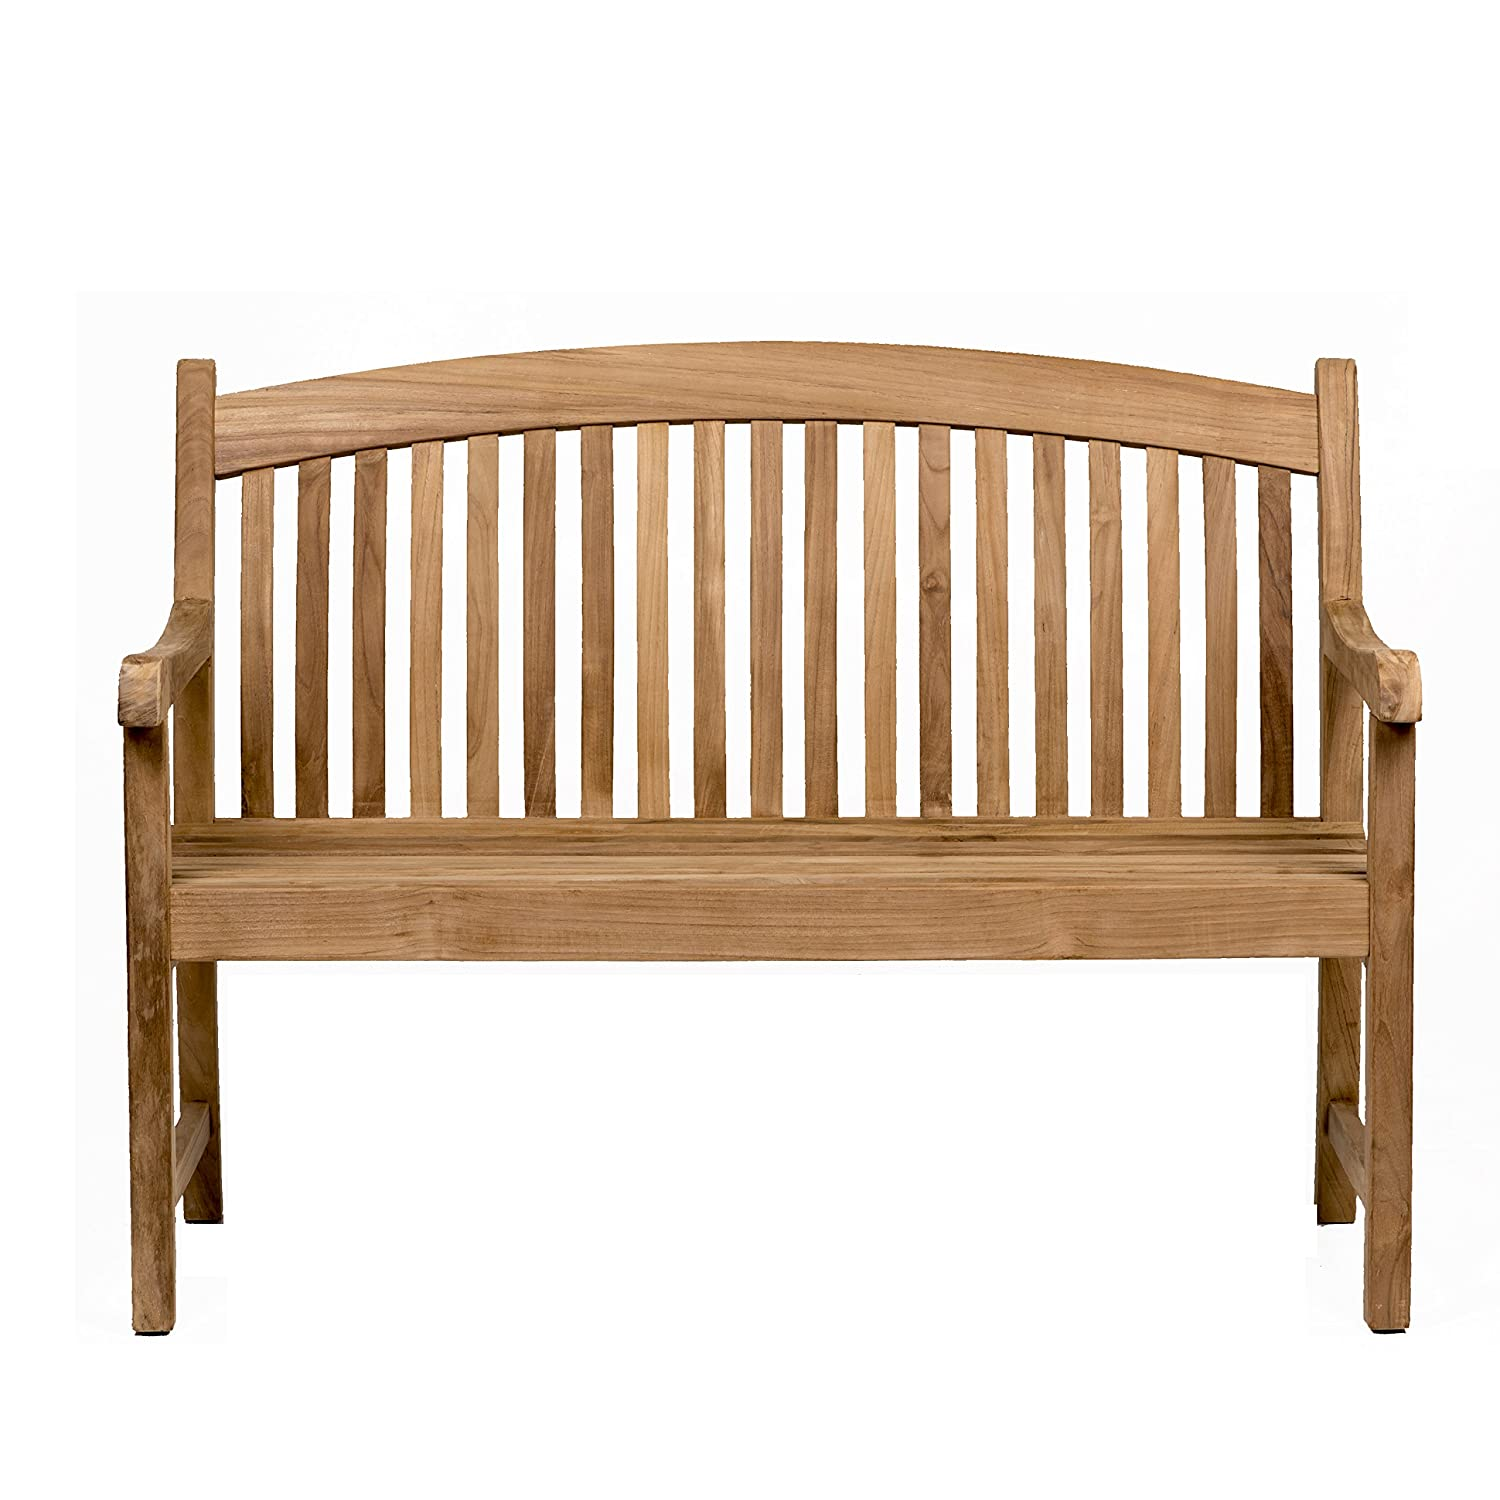 Amazonia Newcastle Patio Bench |Made of Real Teak| Perfect for backyards, Gardens or Parks, Light Brown best gardening gifts